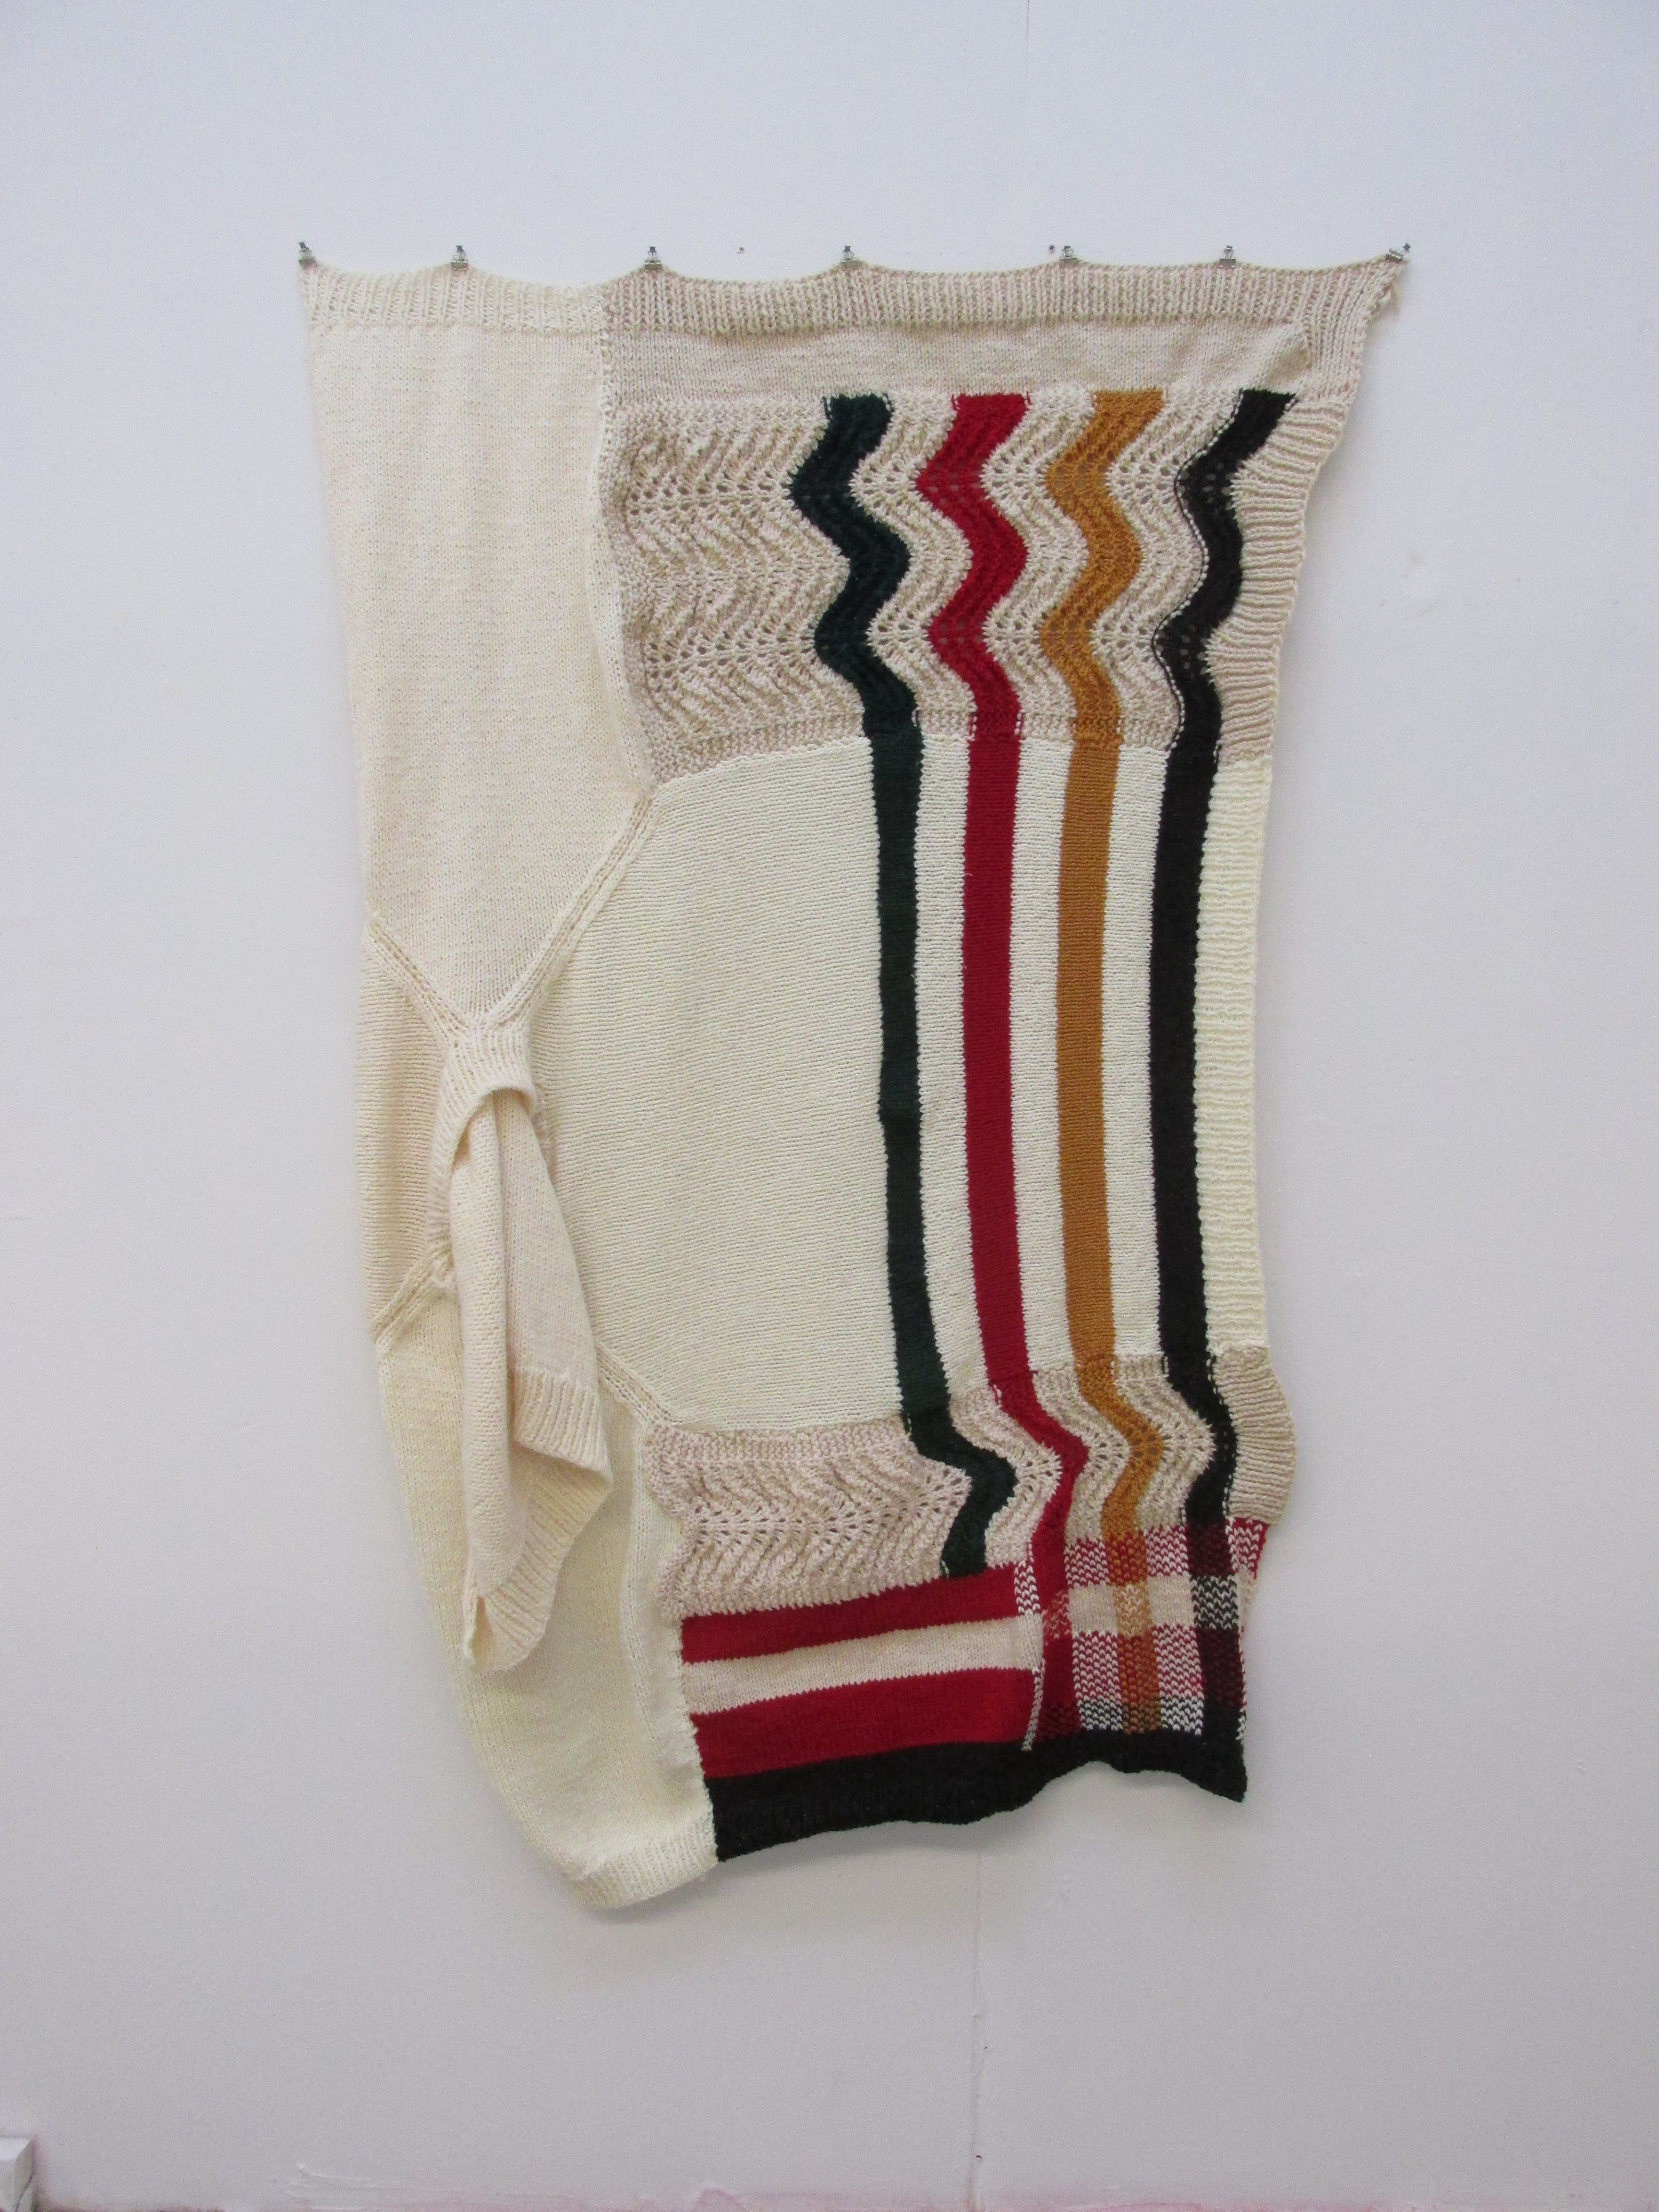 An abstract knitted blanket with irregular Hudson Bay Company stripes by Kate Carder-Thompson